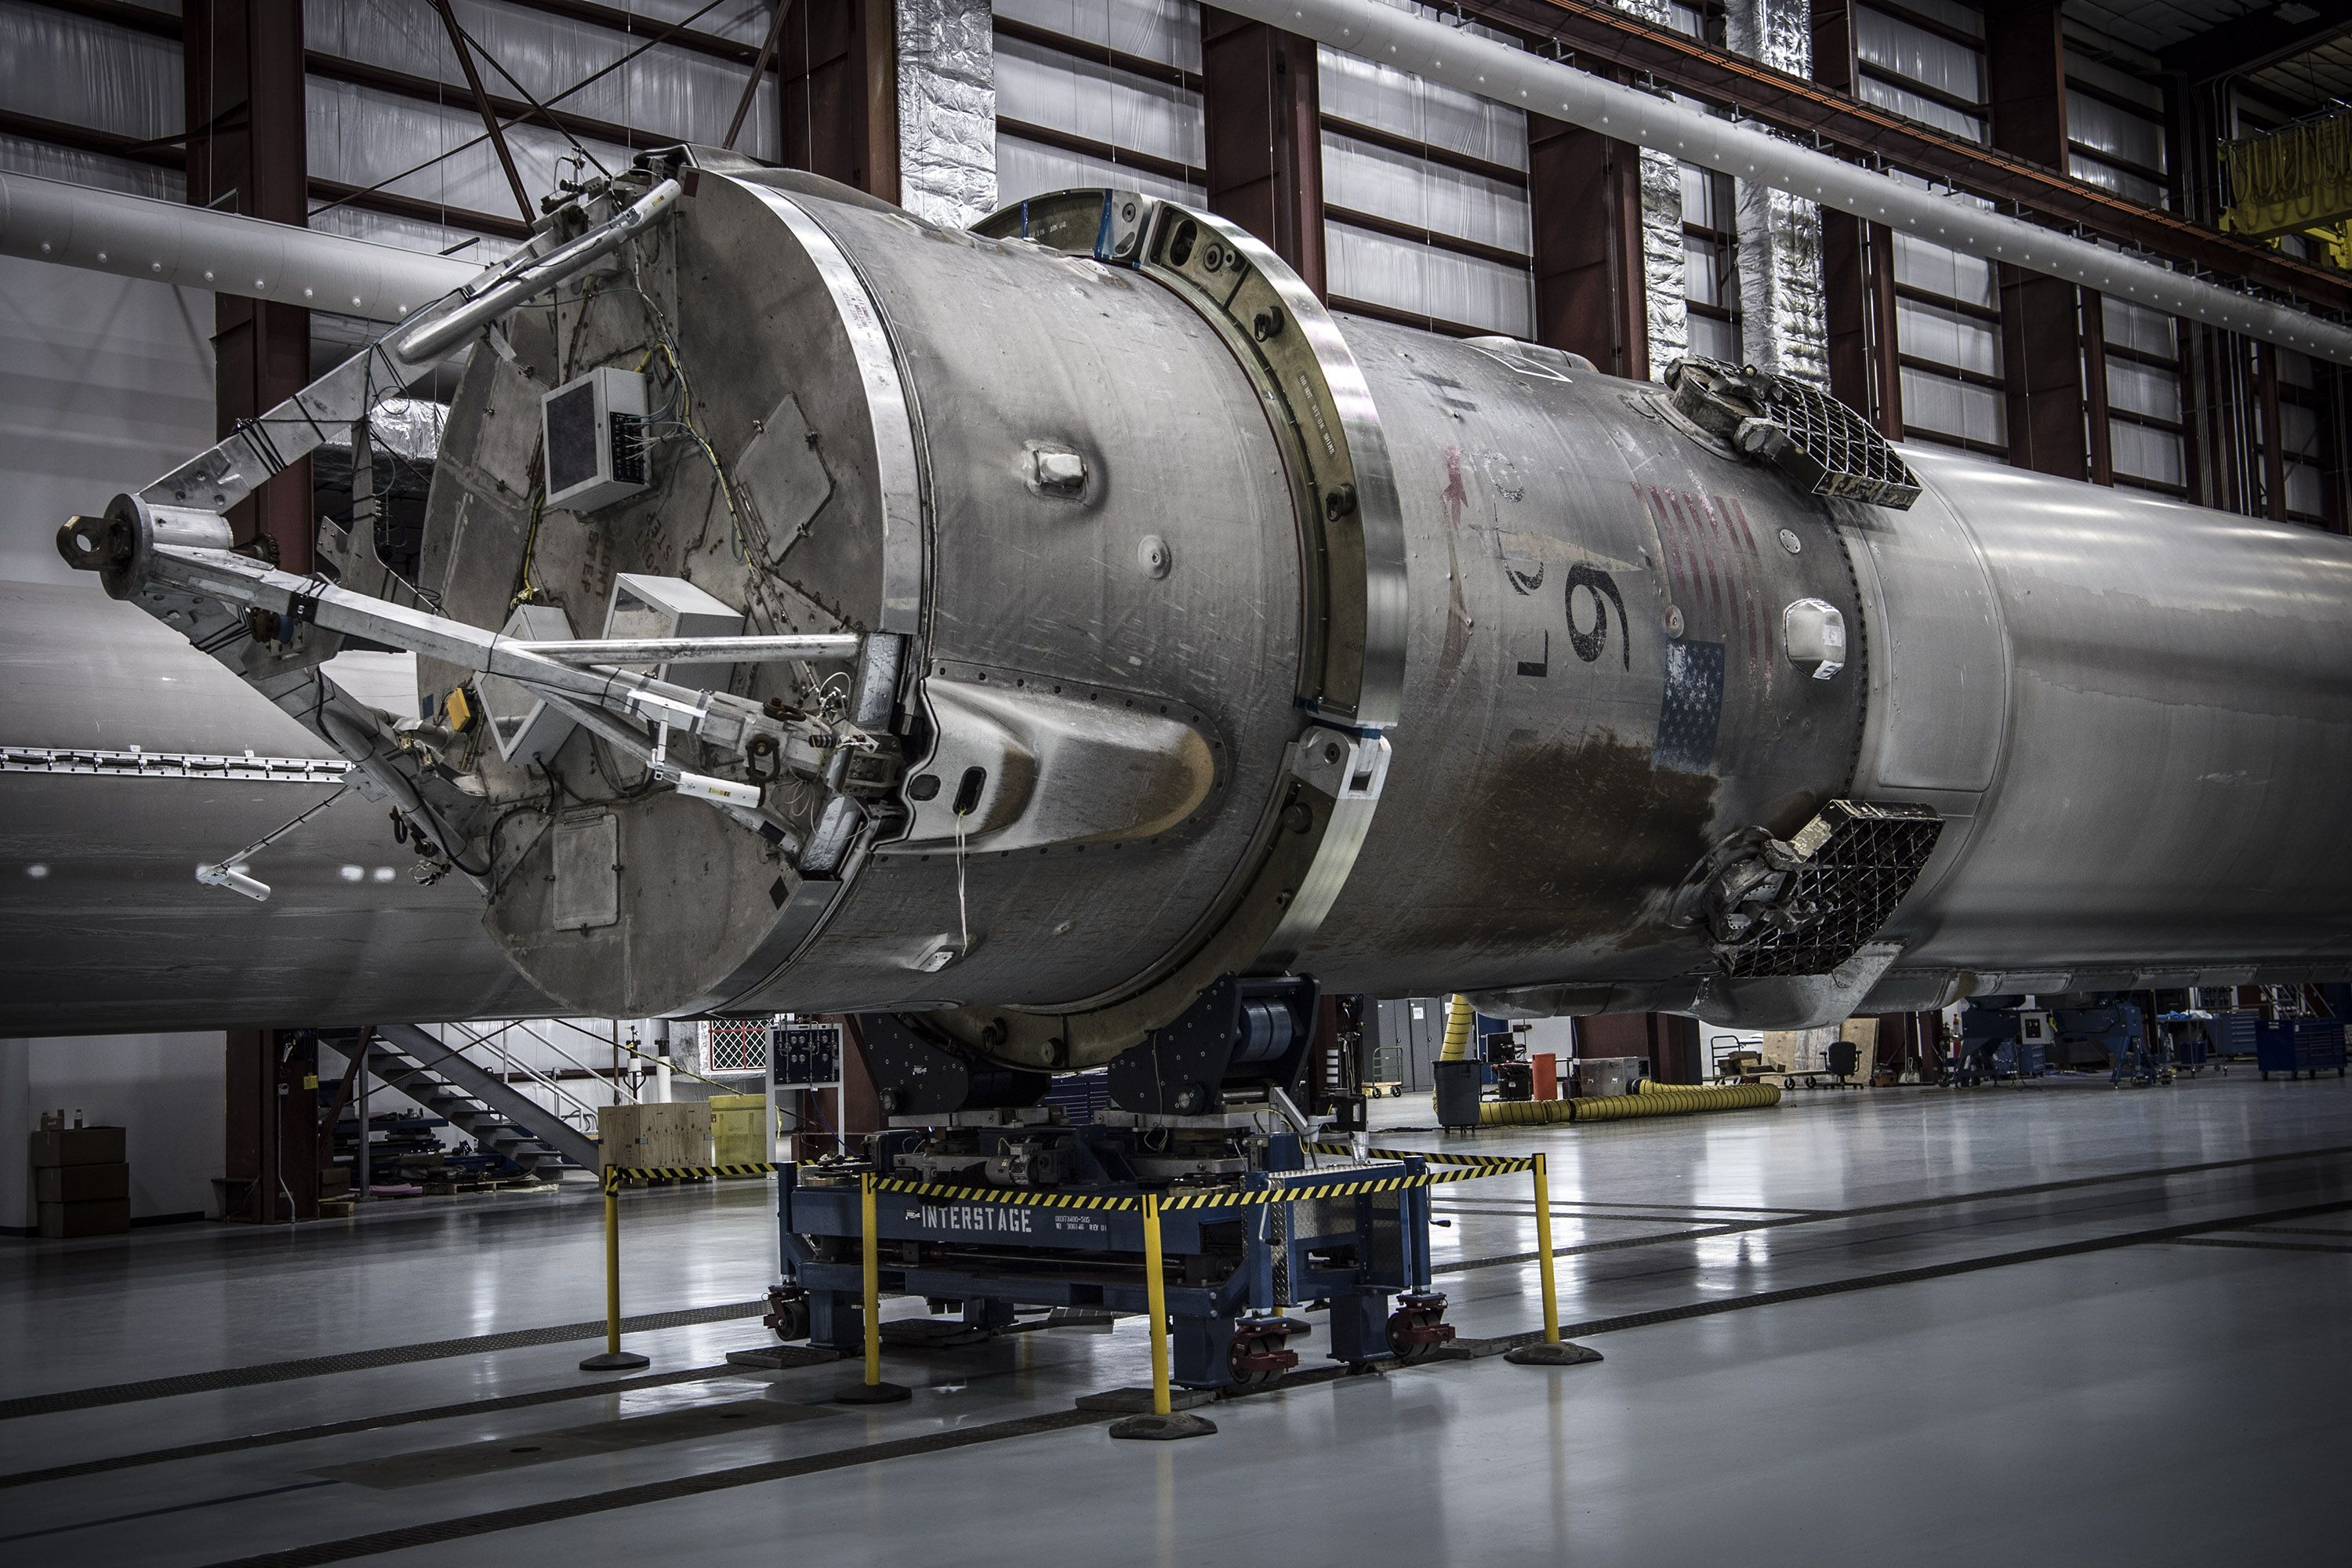 SpaceX Is Running Out of Room for Its Landed Rockets